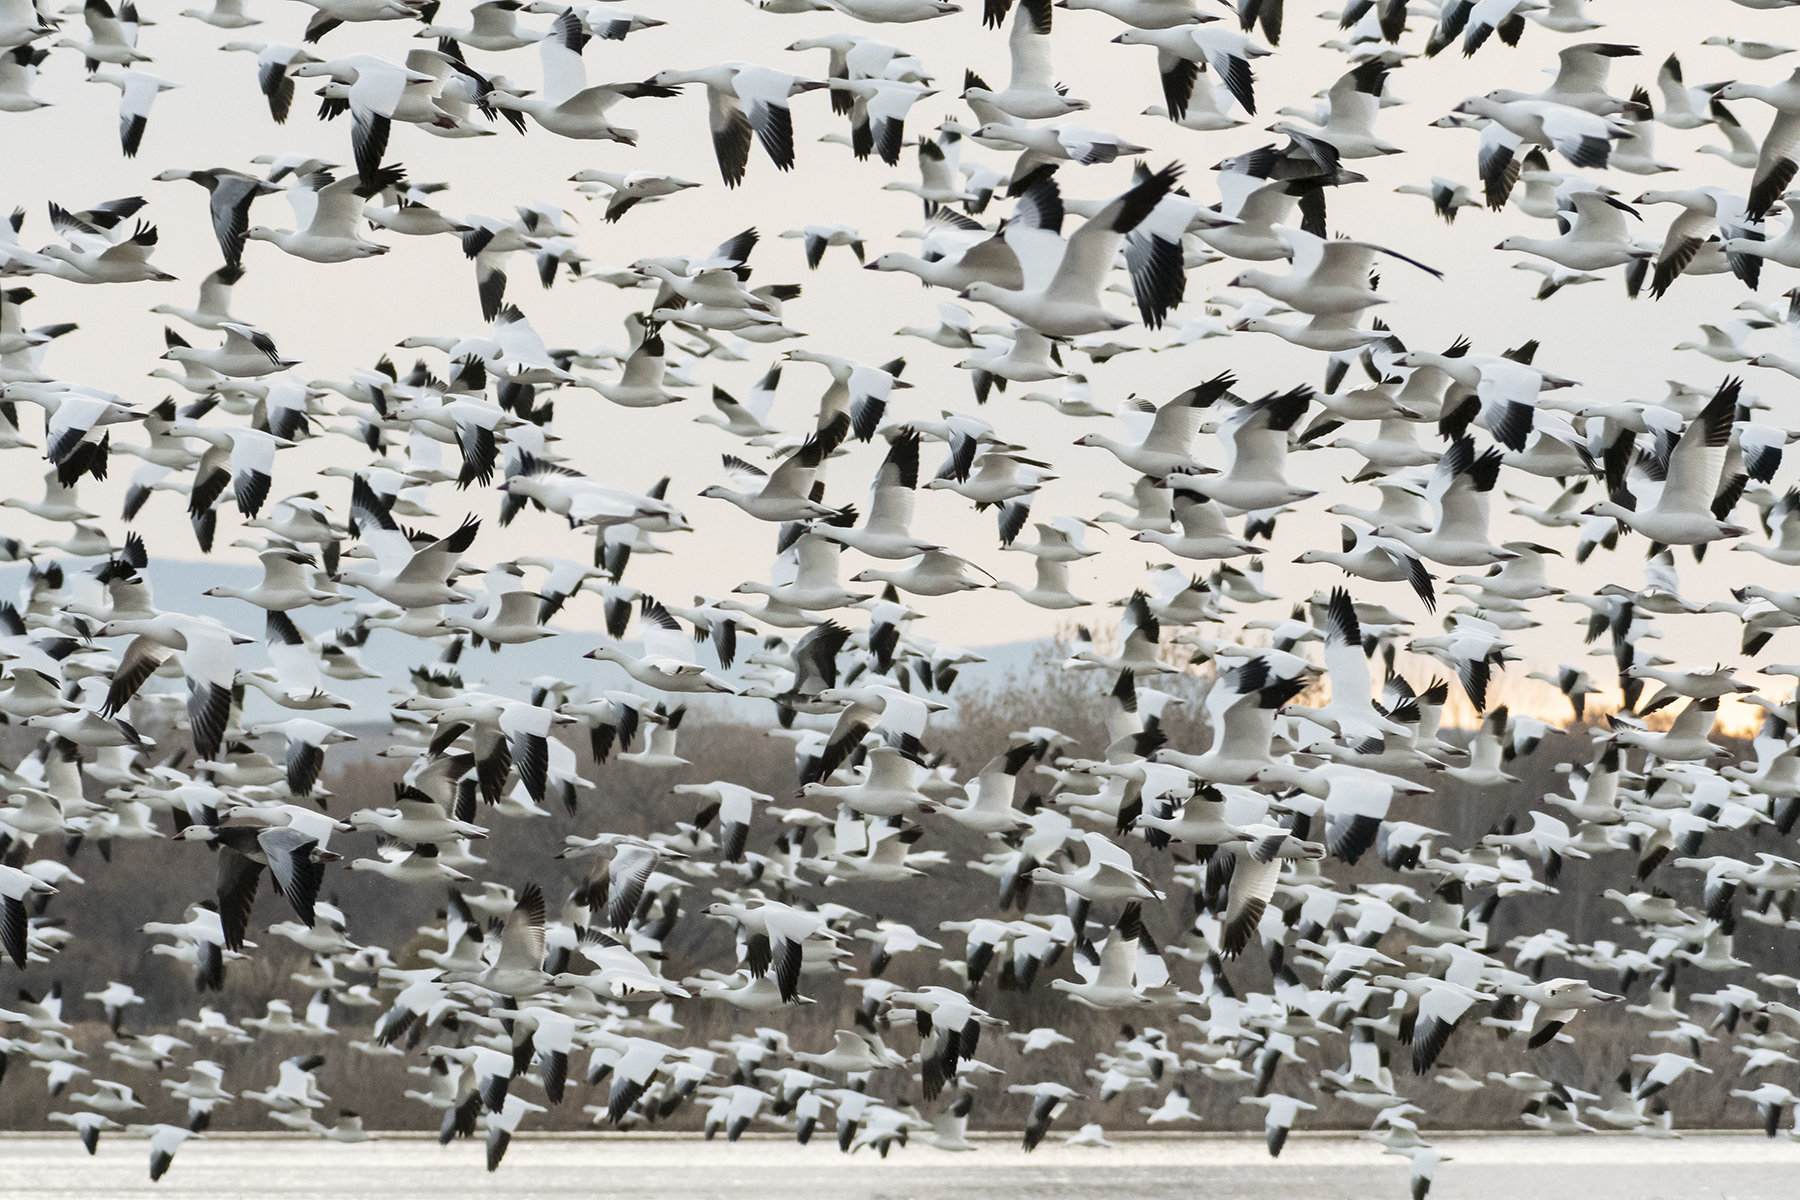 Marlene_Miyamoto_Great North American Migrations_Snow Geese 6_6.jpg